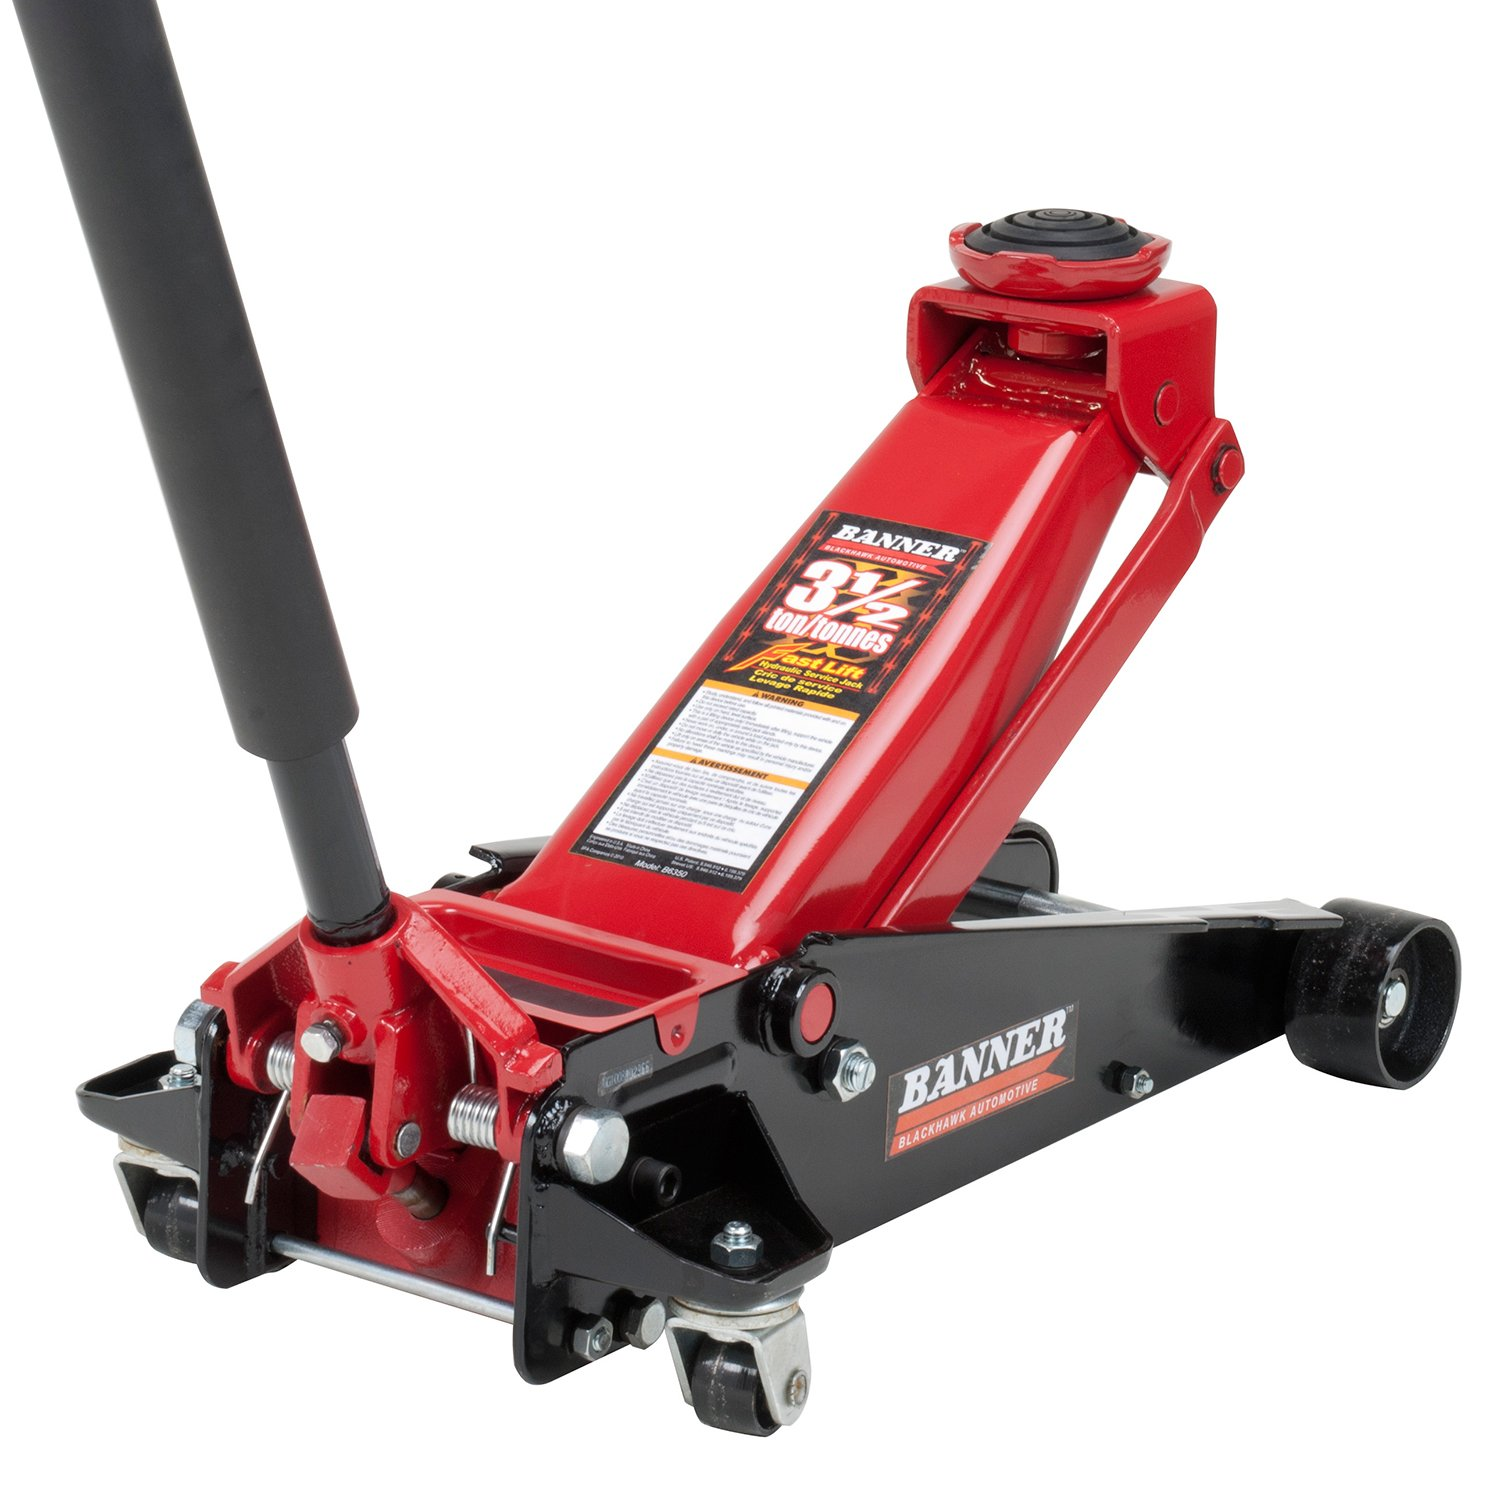 Top 10 Best Hydraulic Floor Jacks Reviews 2016-2017 on ...